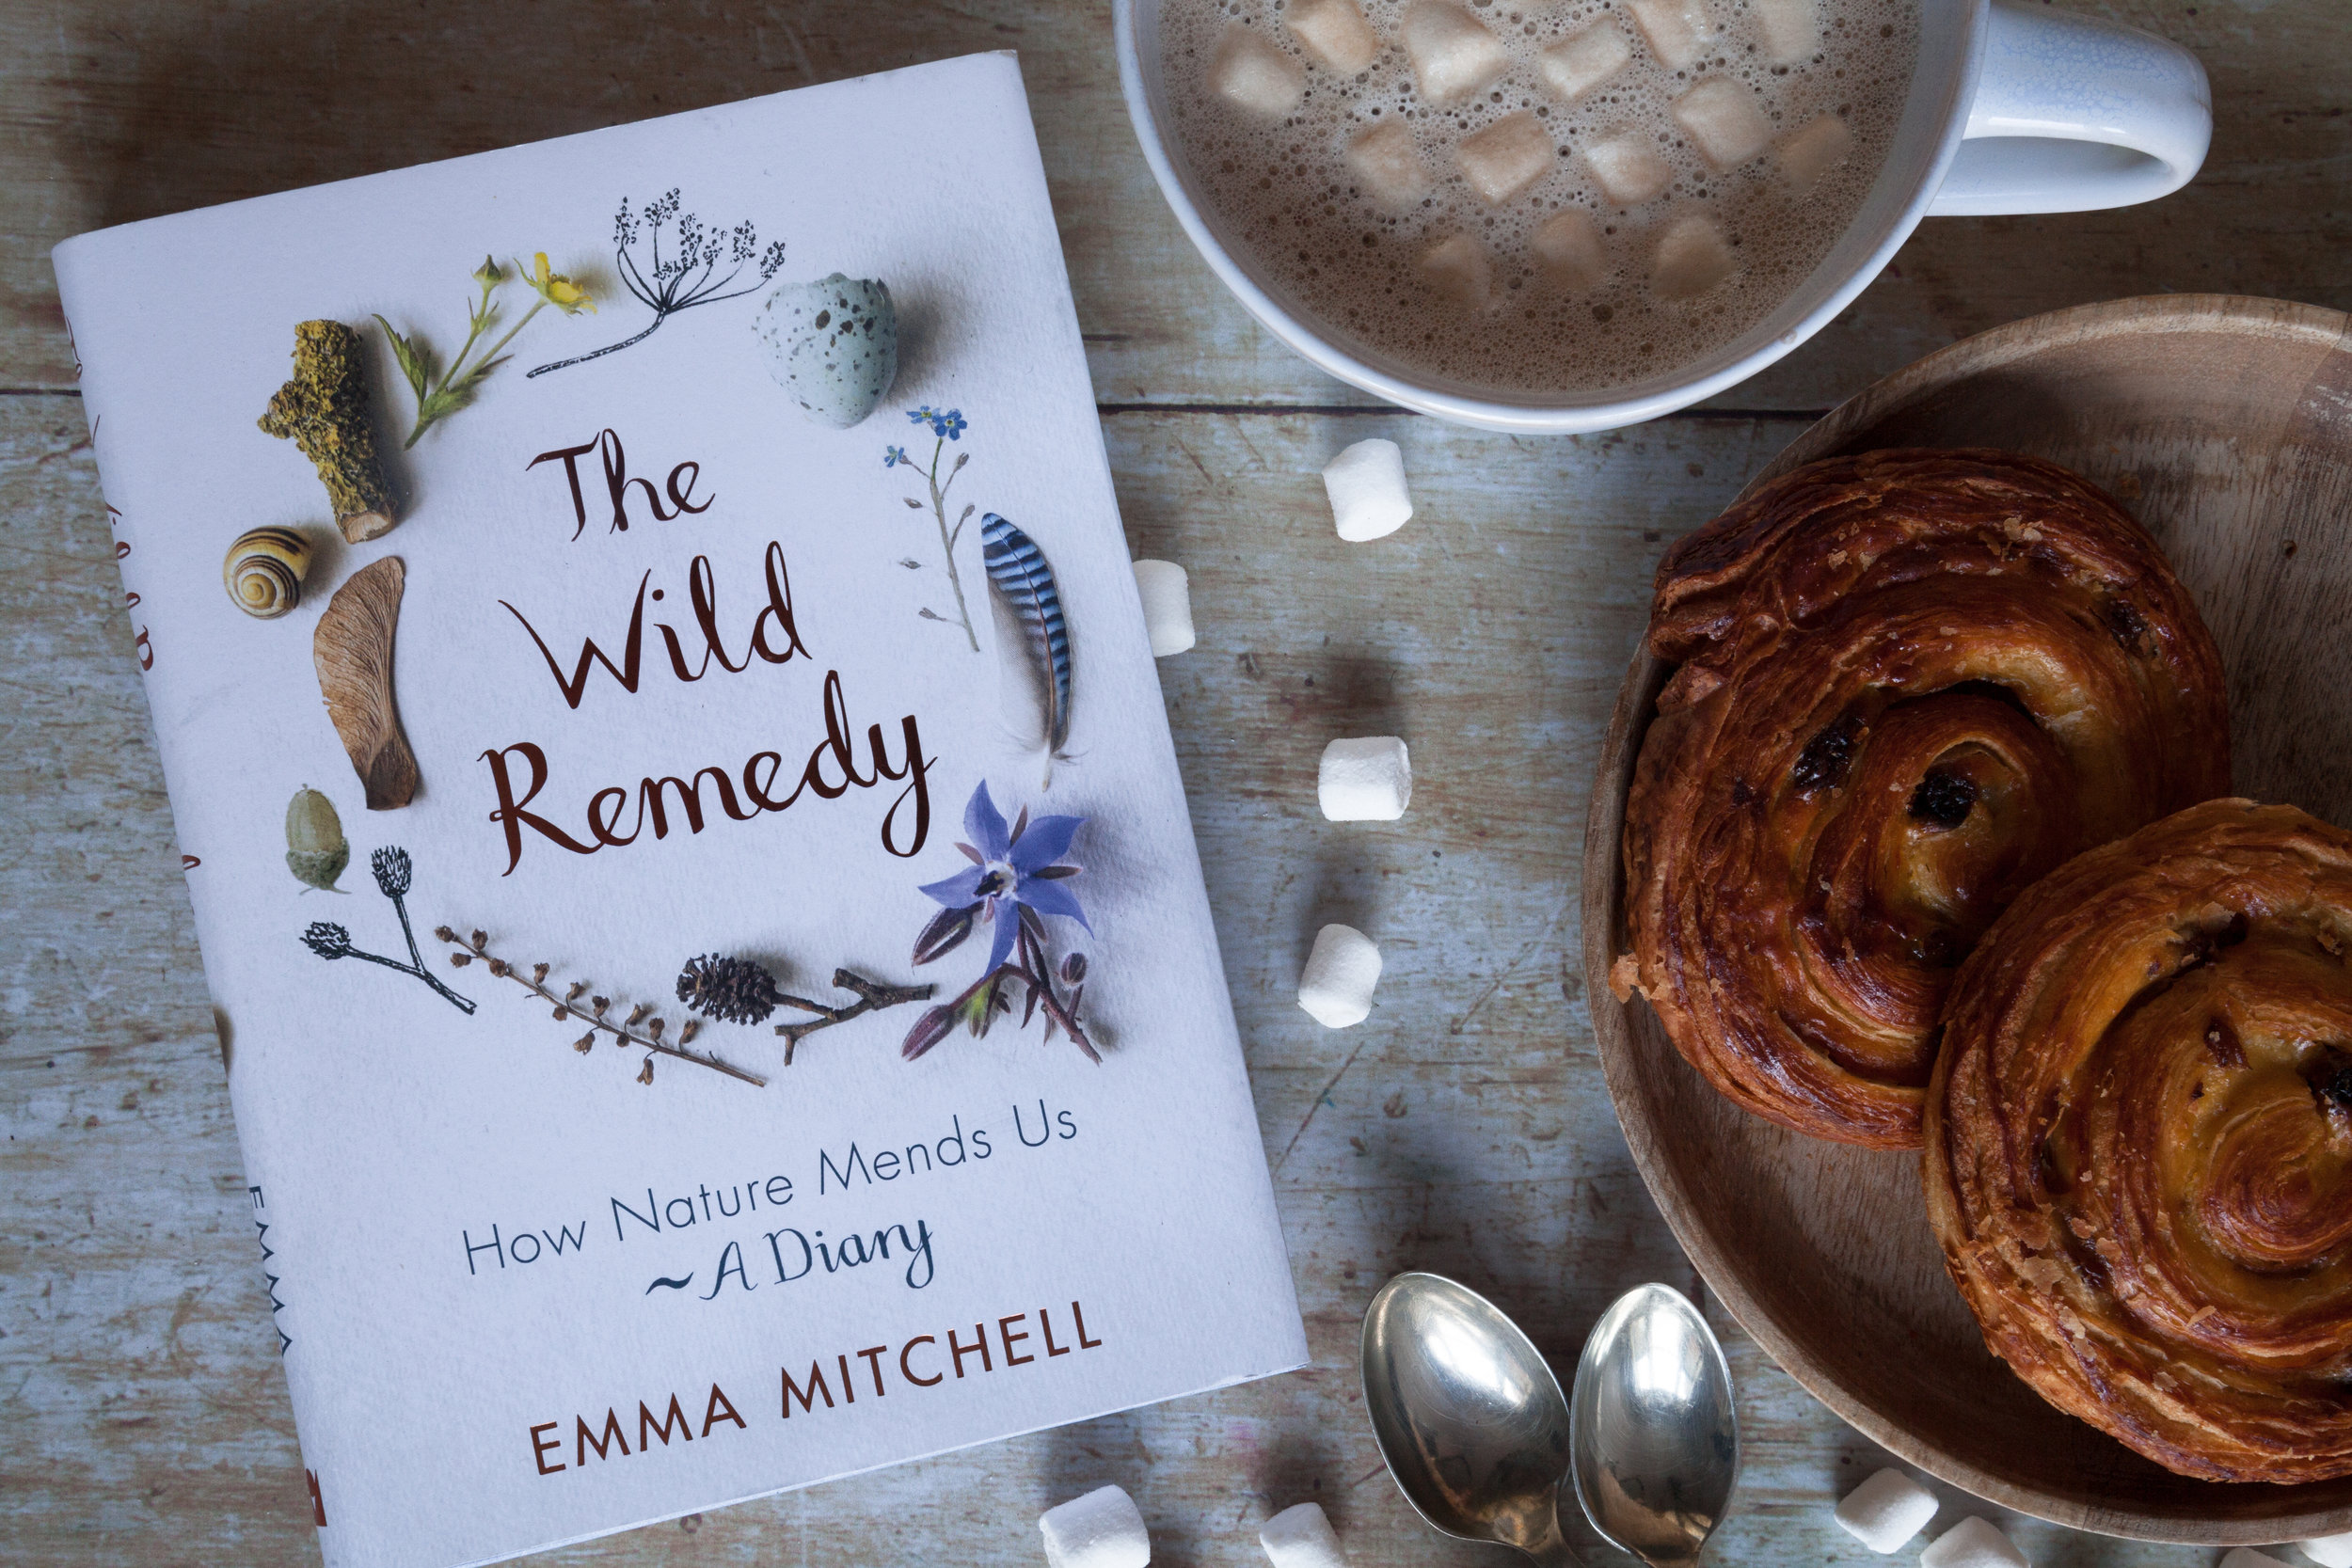 The Wild Remedy: How Nature Mends Us, A Diary by Emma Mitchell